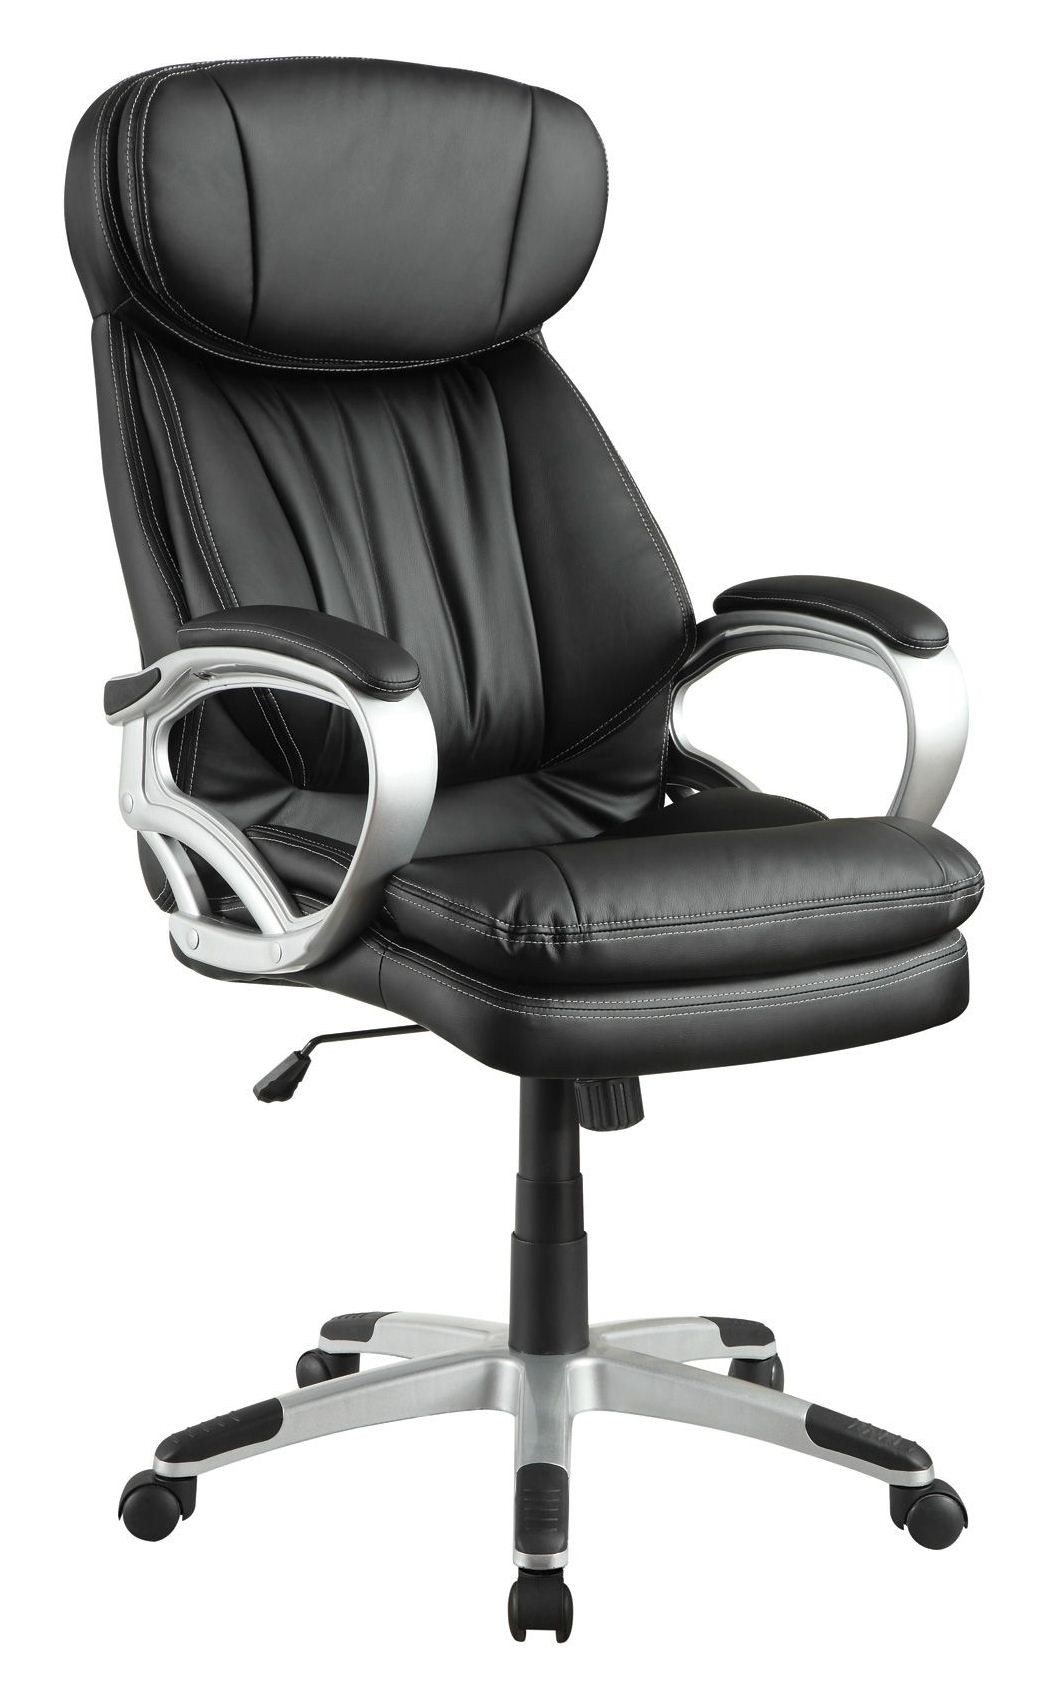 800165 Black Upholstered Office Chair from Coaster 800165